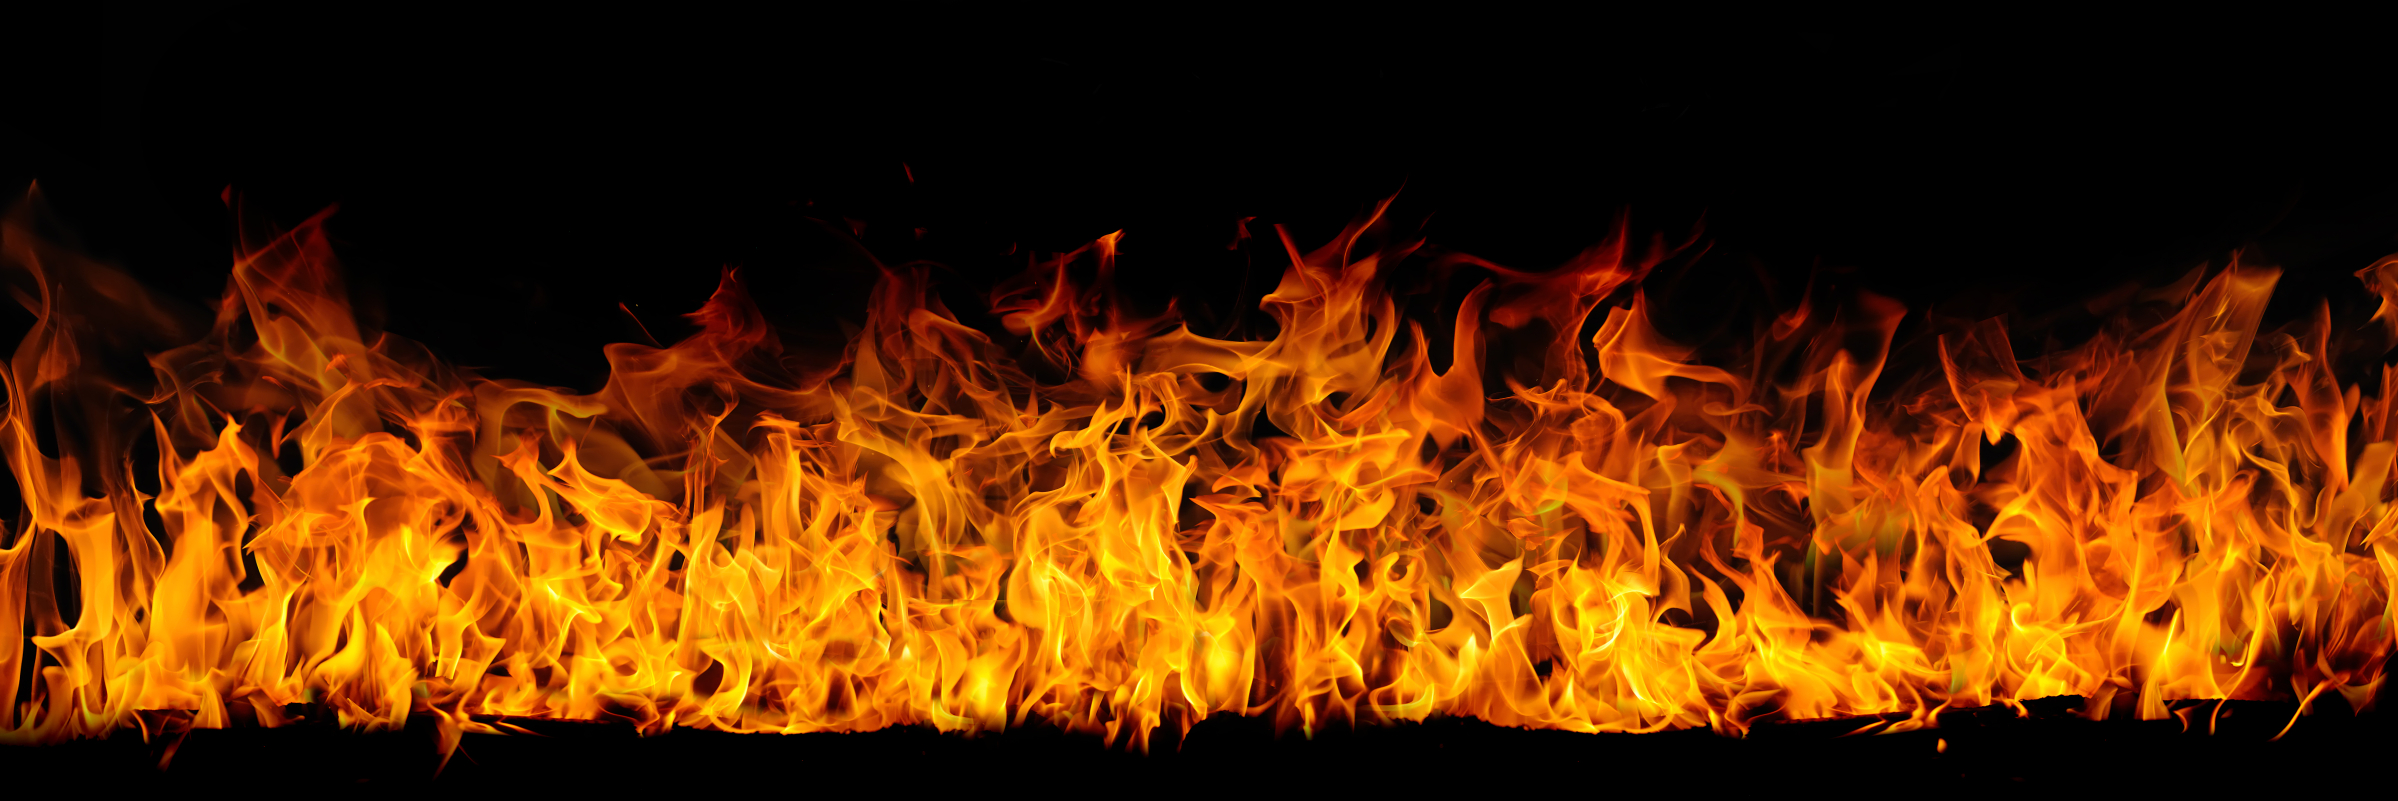 Isolated Flames - iStock_000015458755_Medium